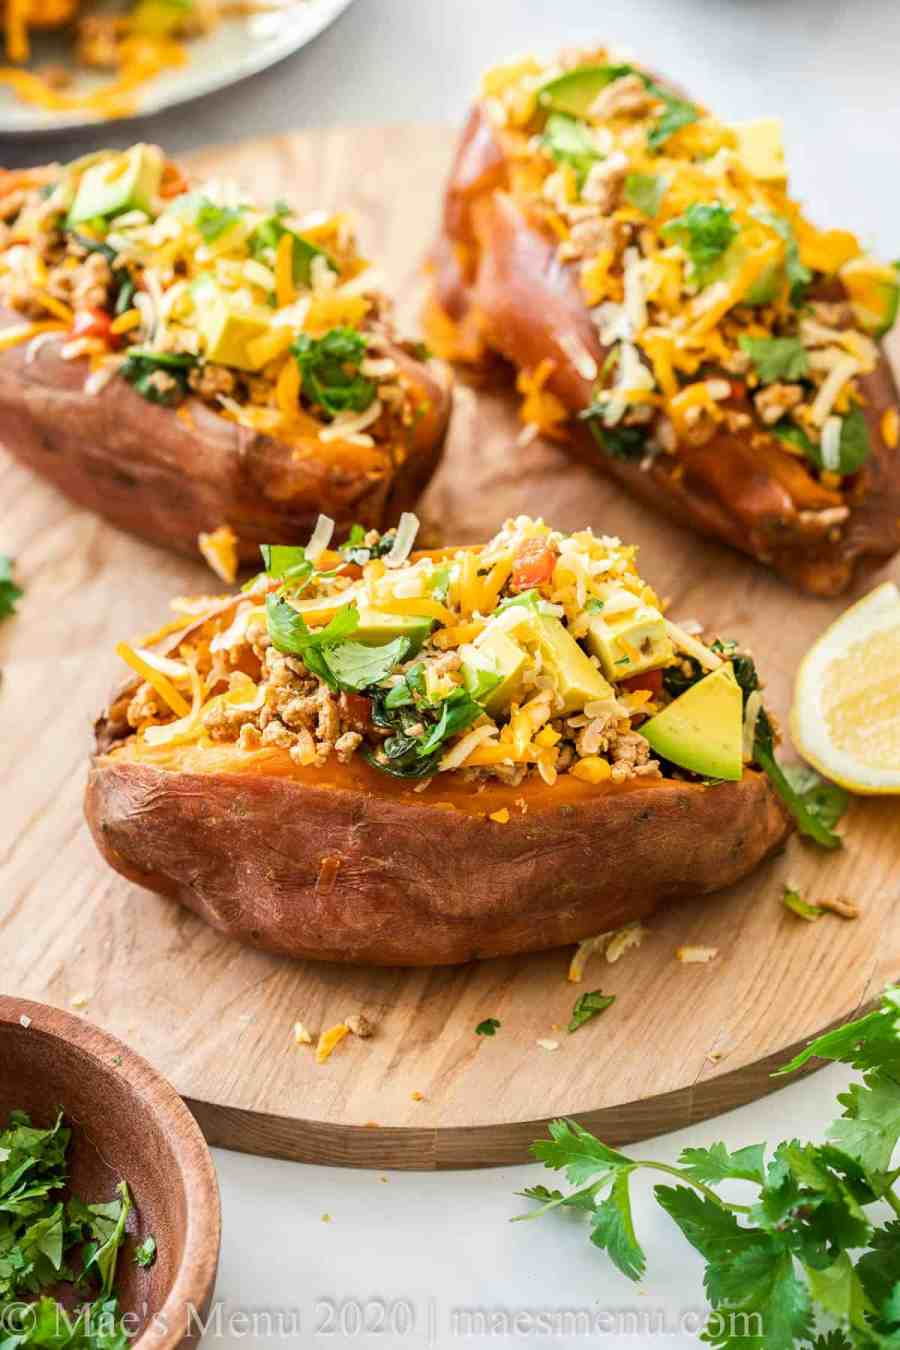 A wooden platter of taco stuffed sweet potatoes. Next to the platter sits cilantro, a lime wedge, and shredded cheese.